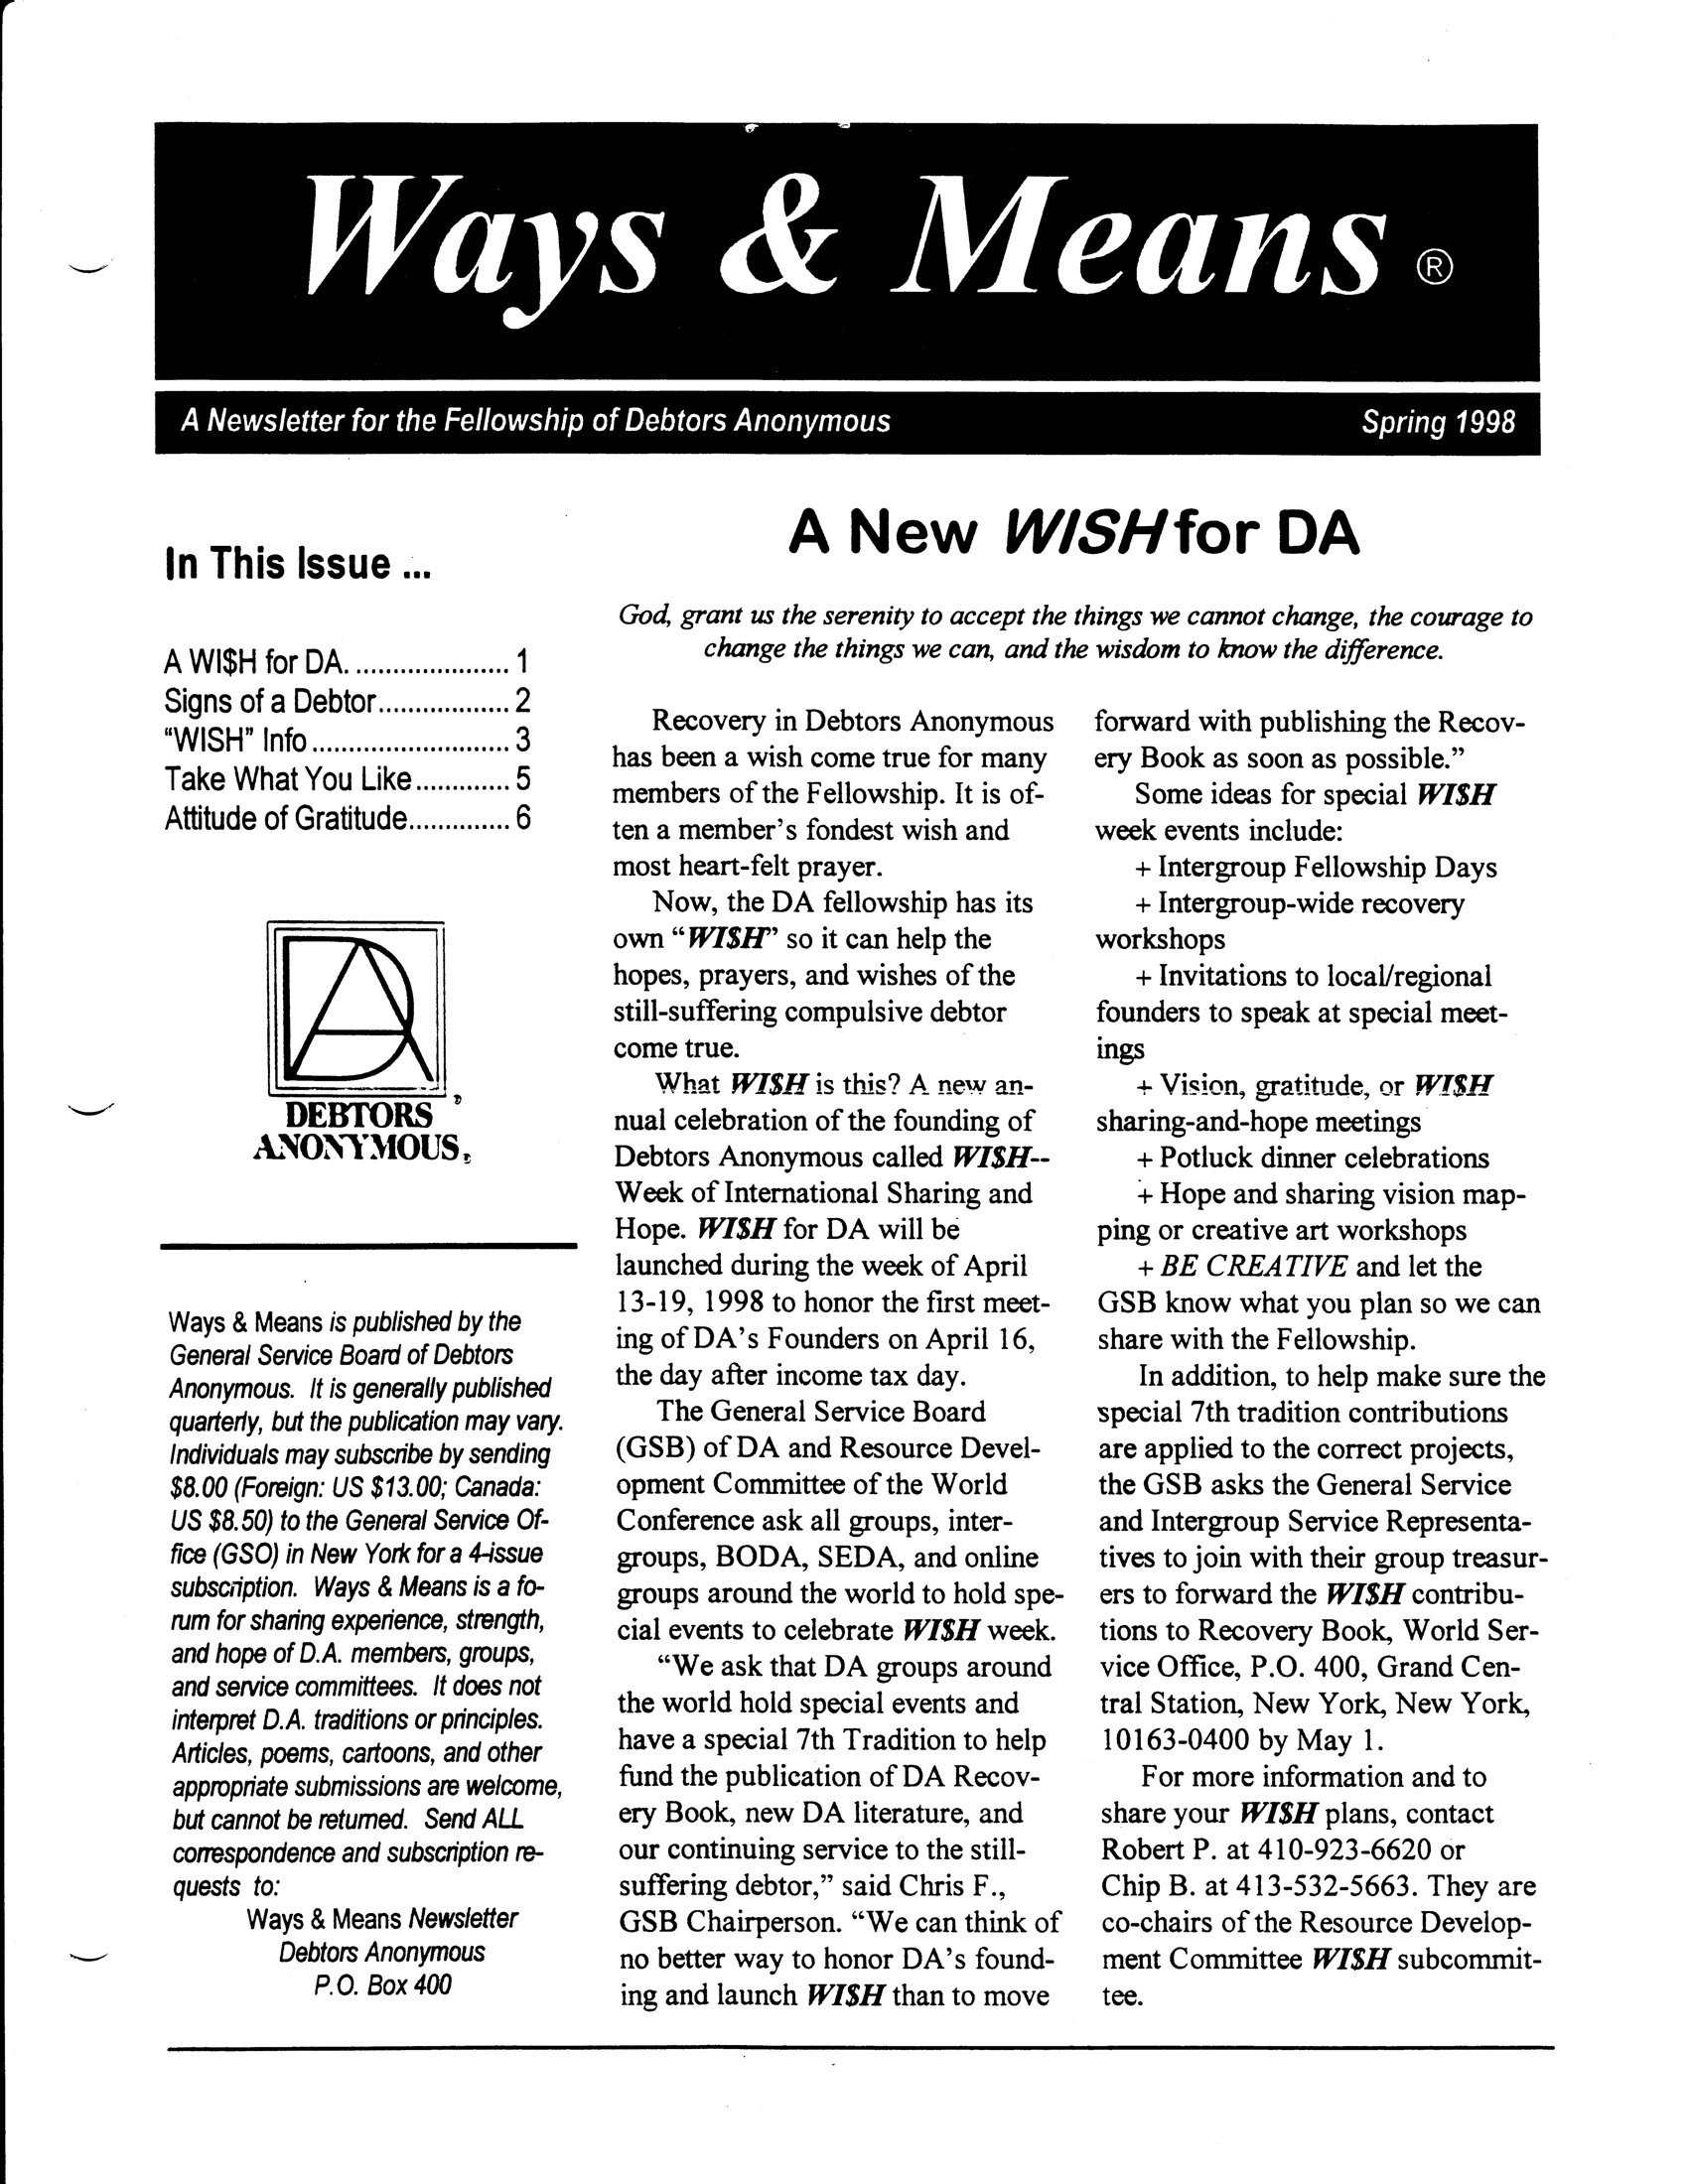 Ways & Means 2nd QTR 1998